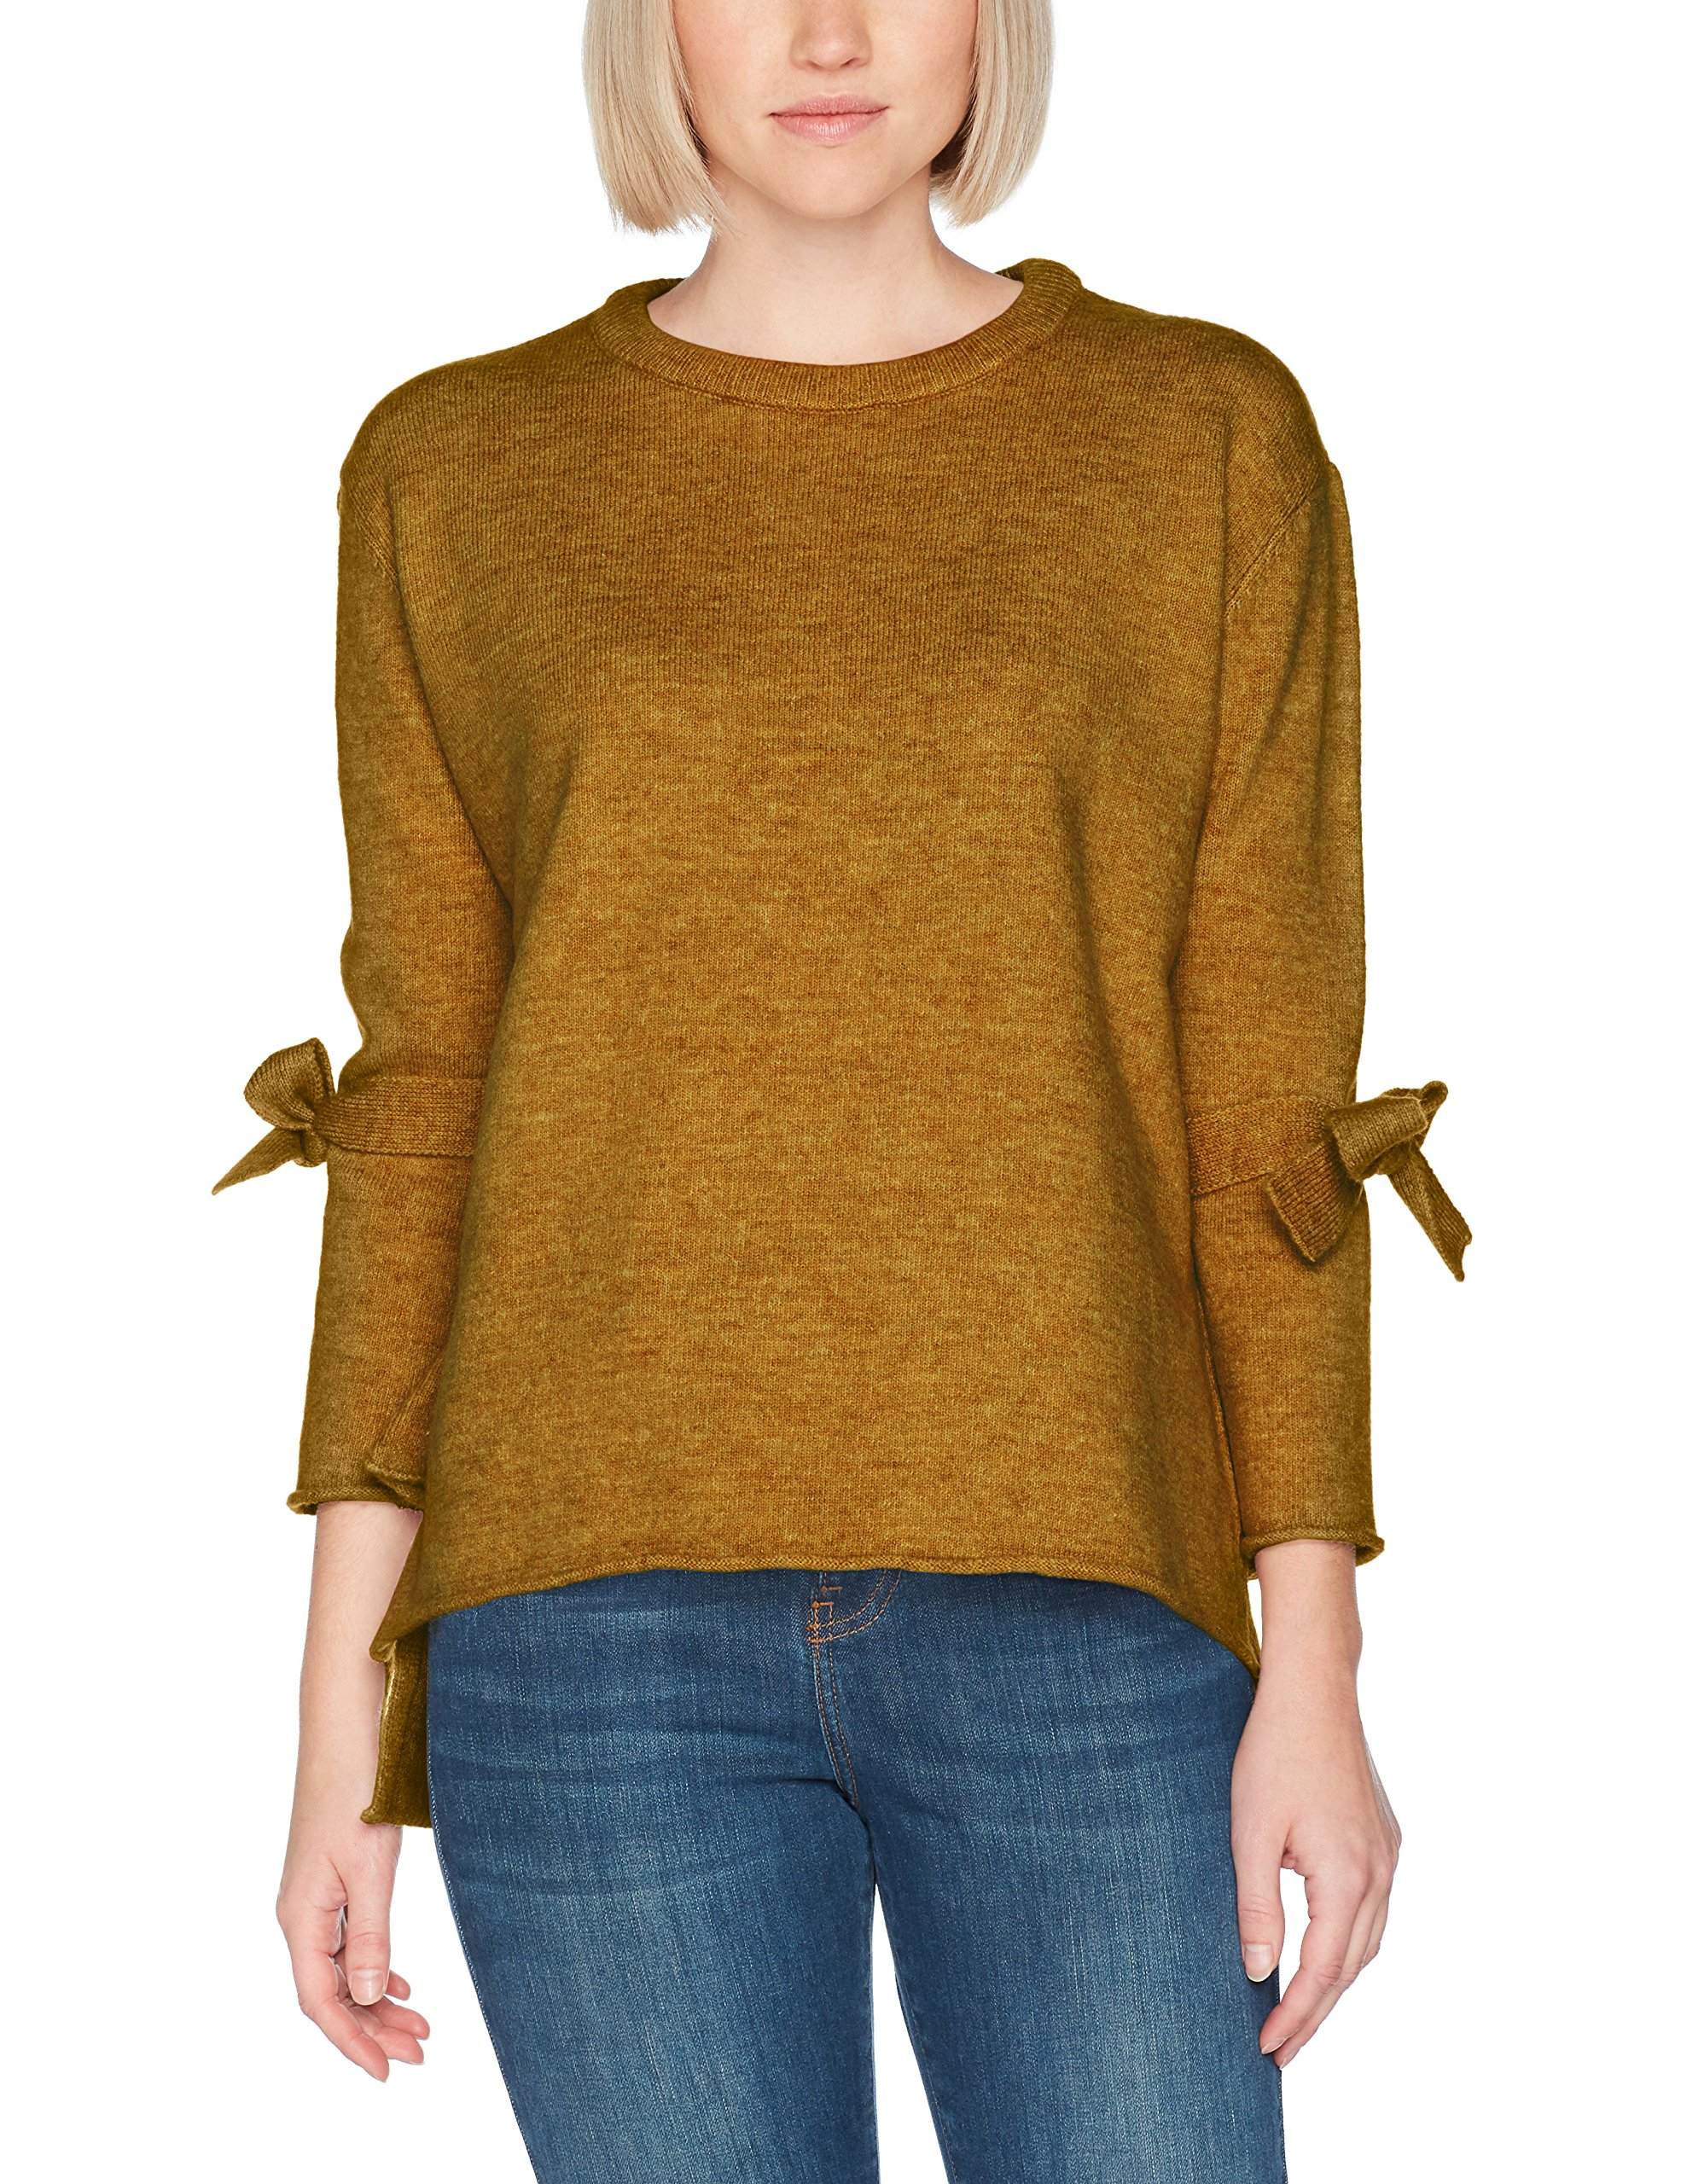 Moreamp; PullMarroncurry Pullover Gold 017640 Femme tdCrhsQx